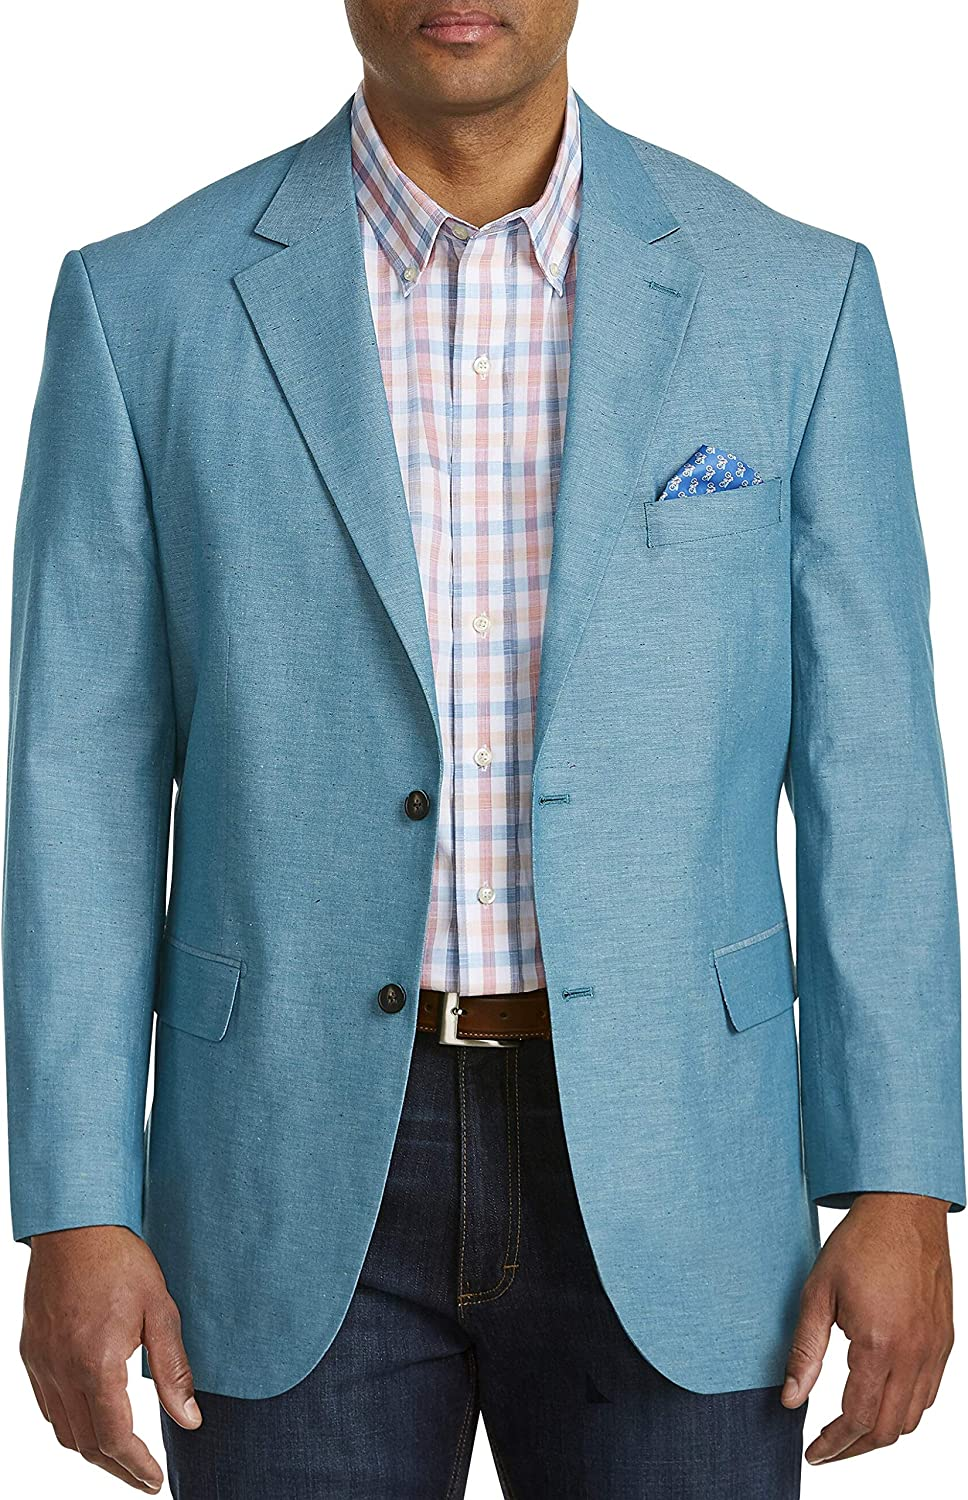 Oak Hill by DXL Big and Tall Jacket-Relaxer Chambray Textured Sport Coat